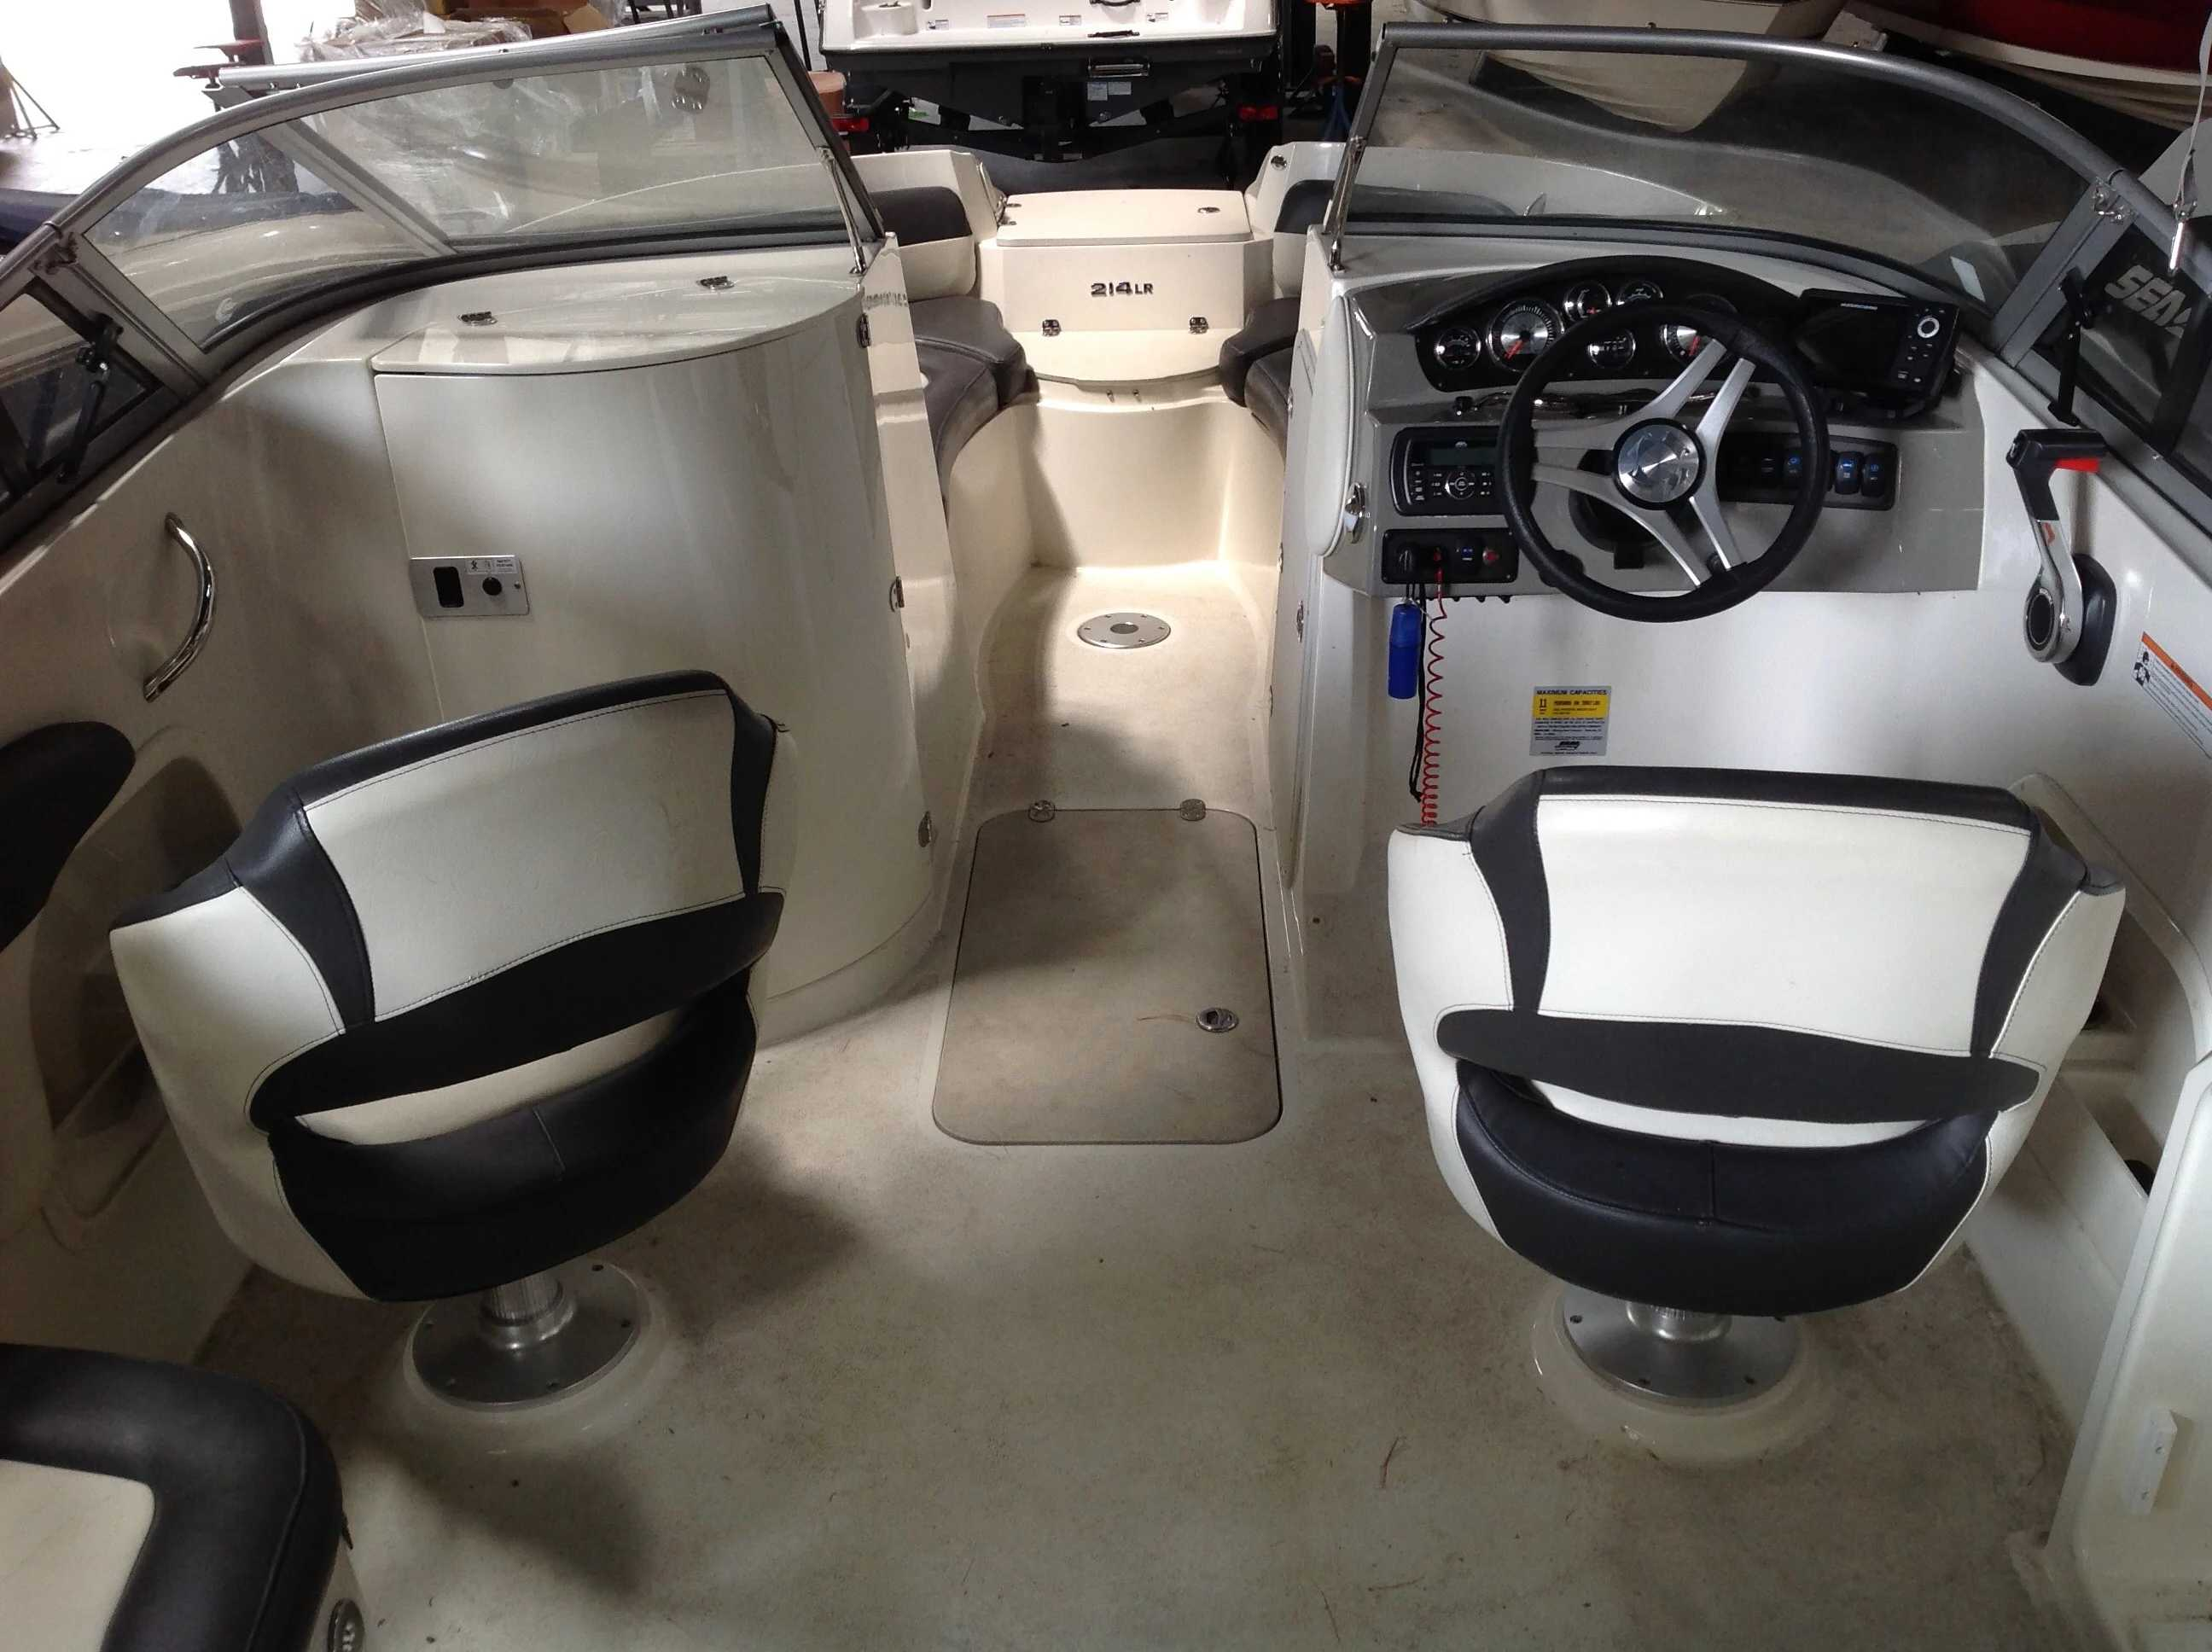 2017 Stingray boat for sale, model of the boat is 214LR & Image # 14 of 15